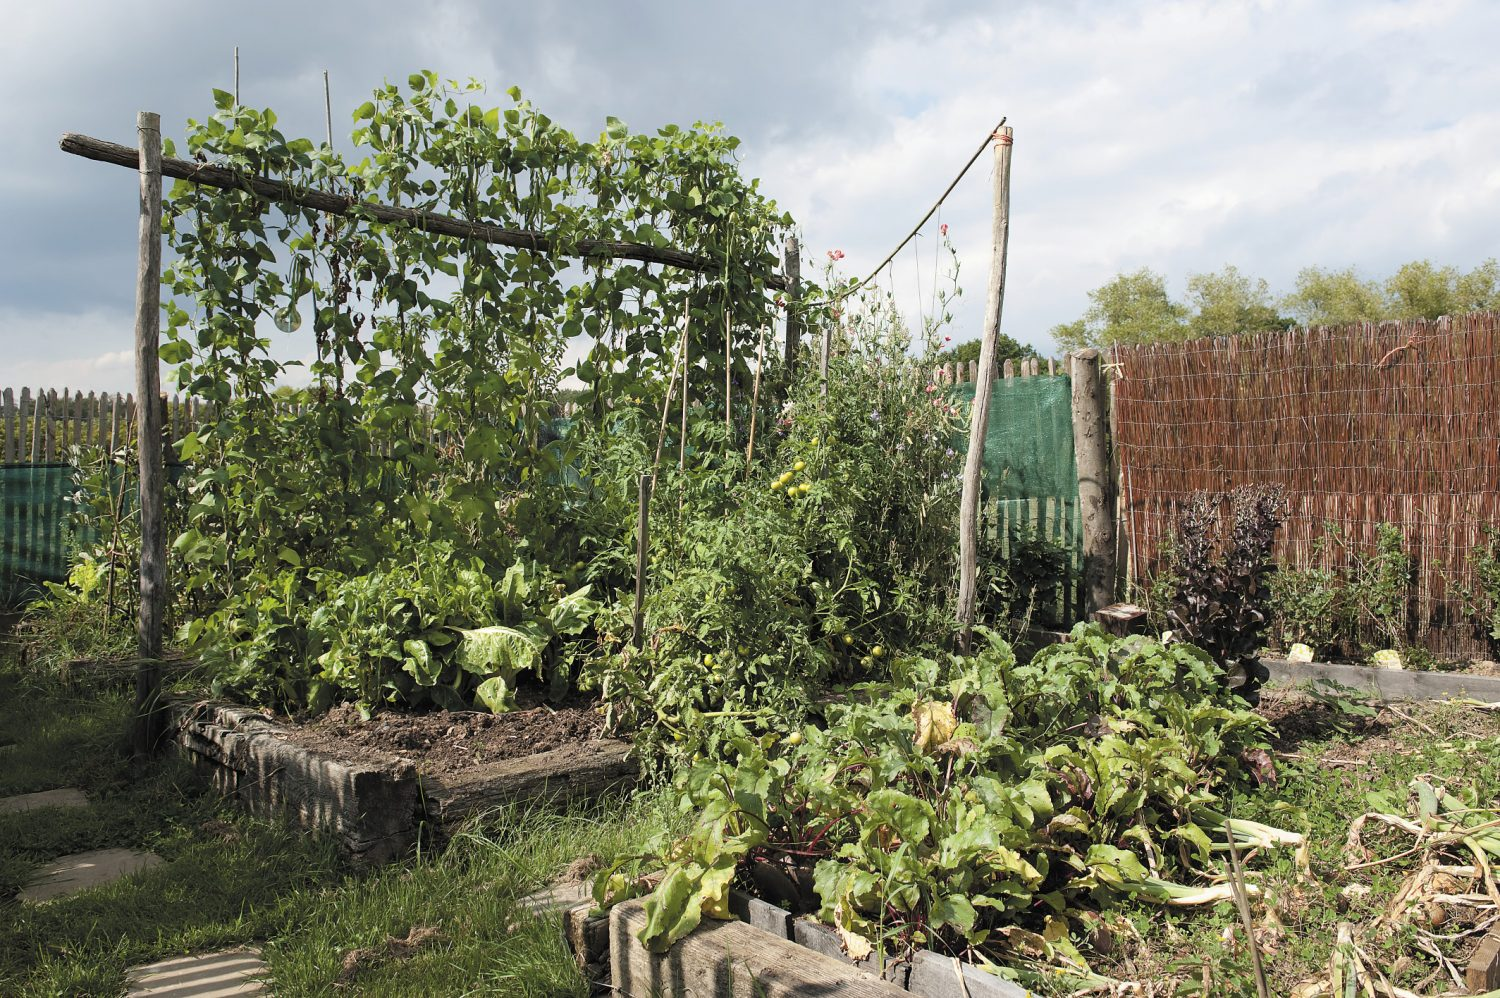 the vegetable garden literally brims with seasonal produce